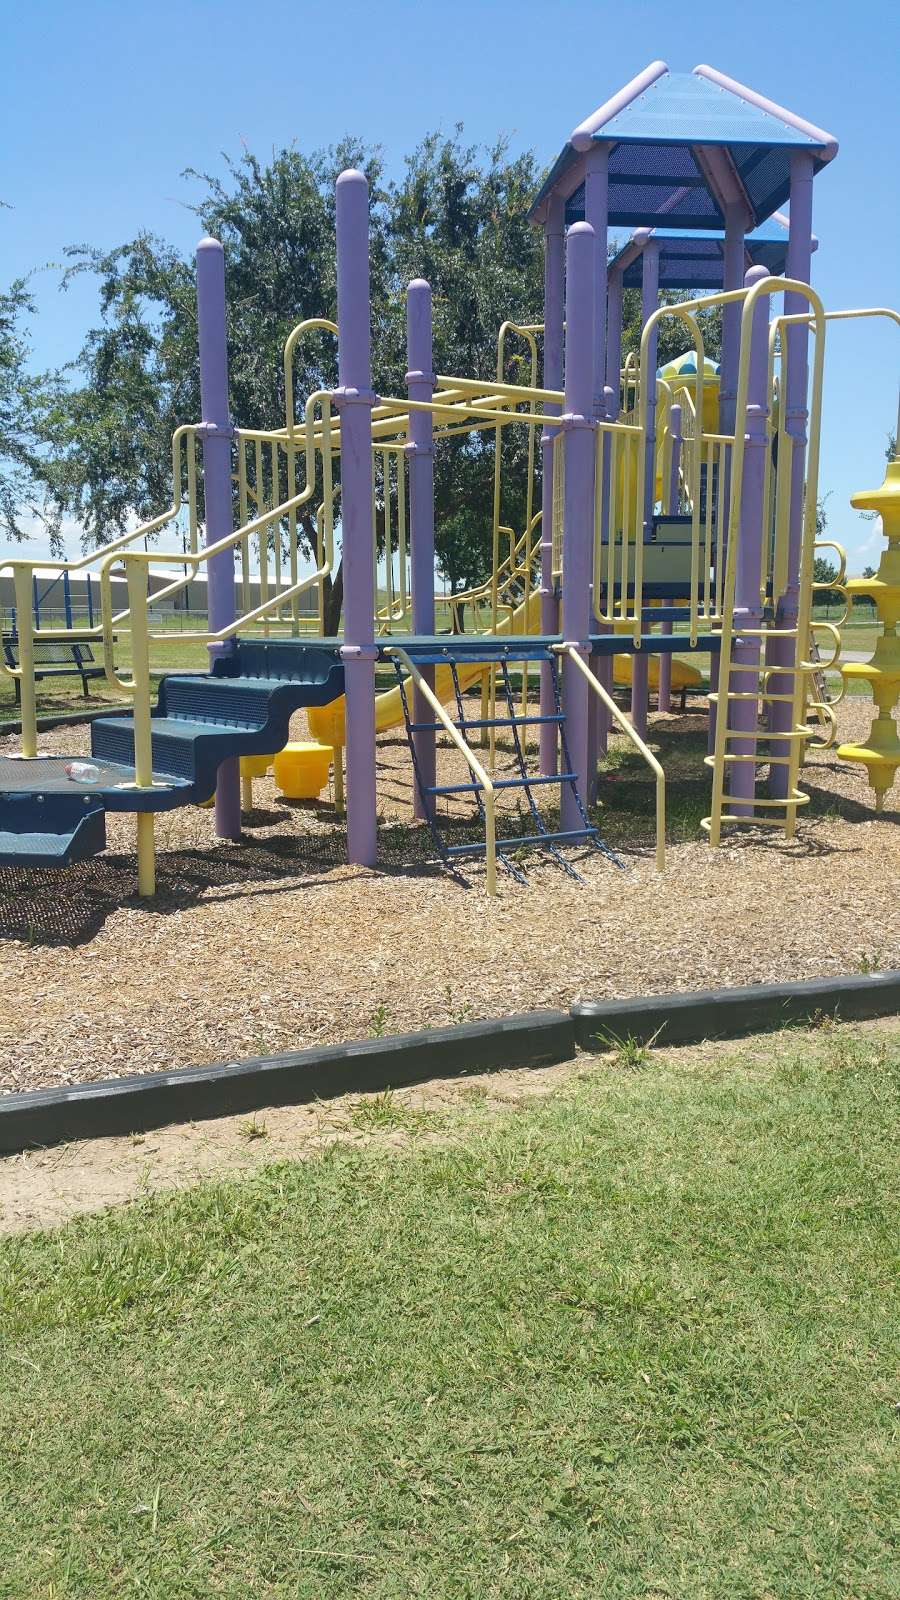 Four Corners Recreation Center - park  | Photo 2 of 10 | Address: 15700 Old Richmond Rd, Sugar Land, TX 77498, USA | Phone: (281) 835-9419